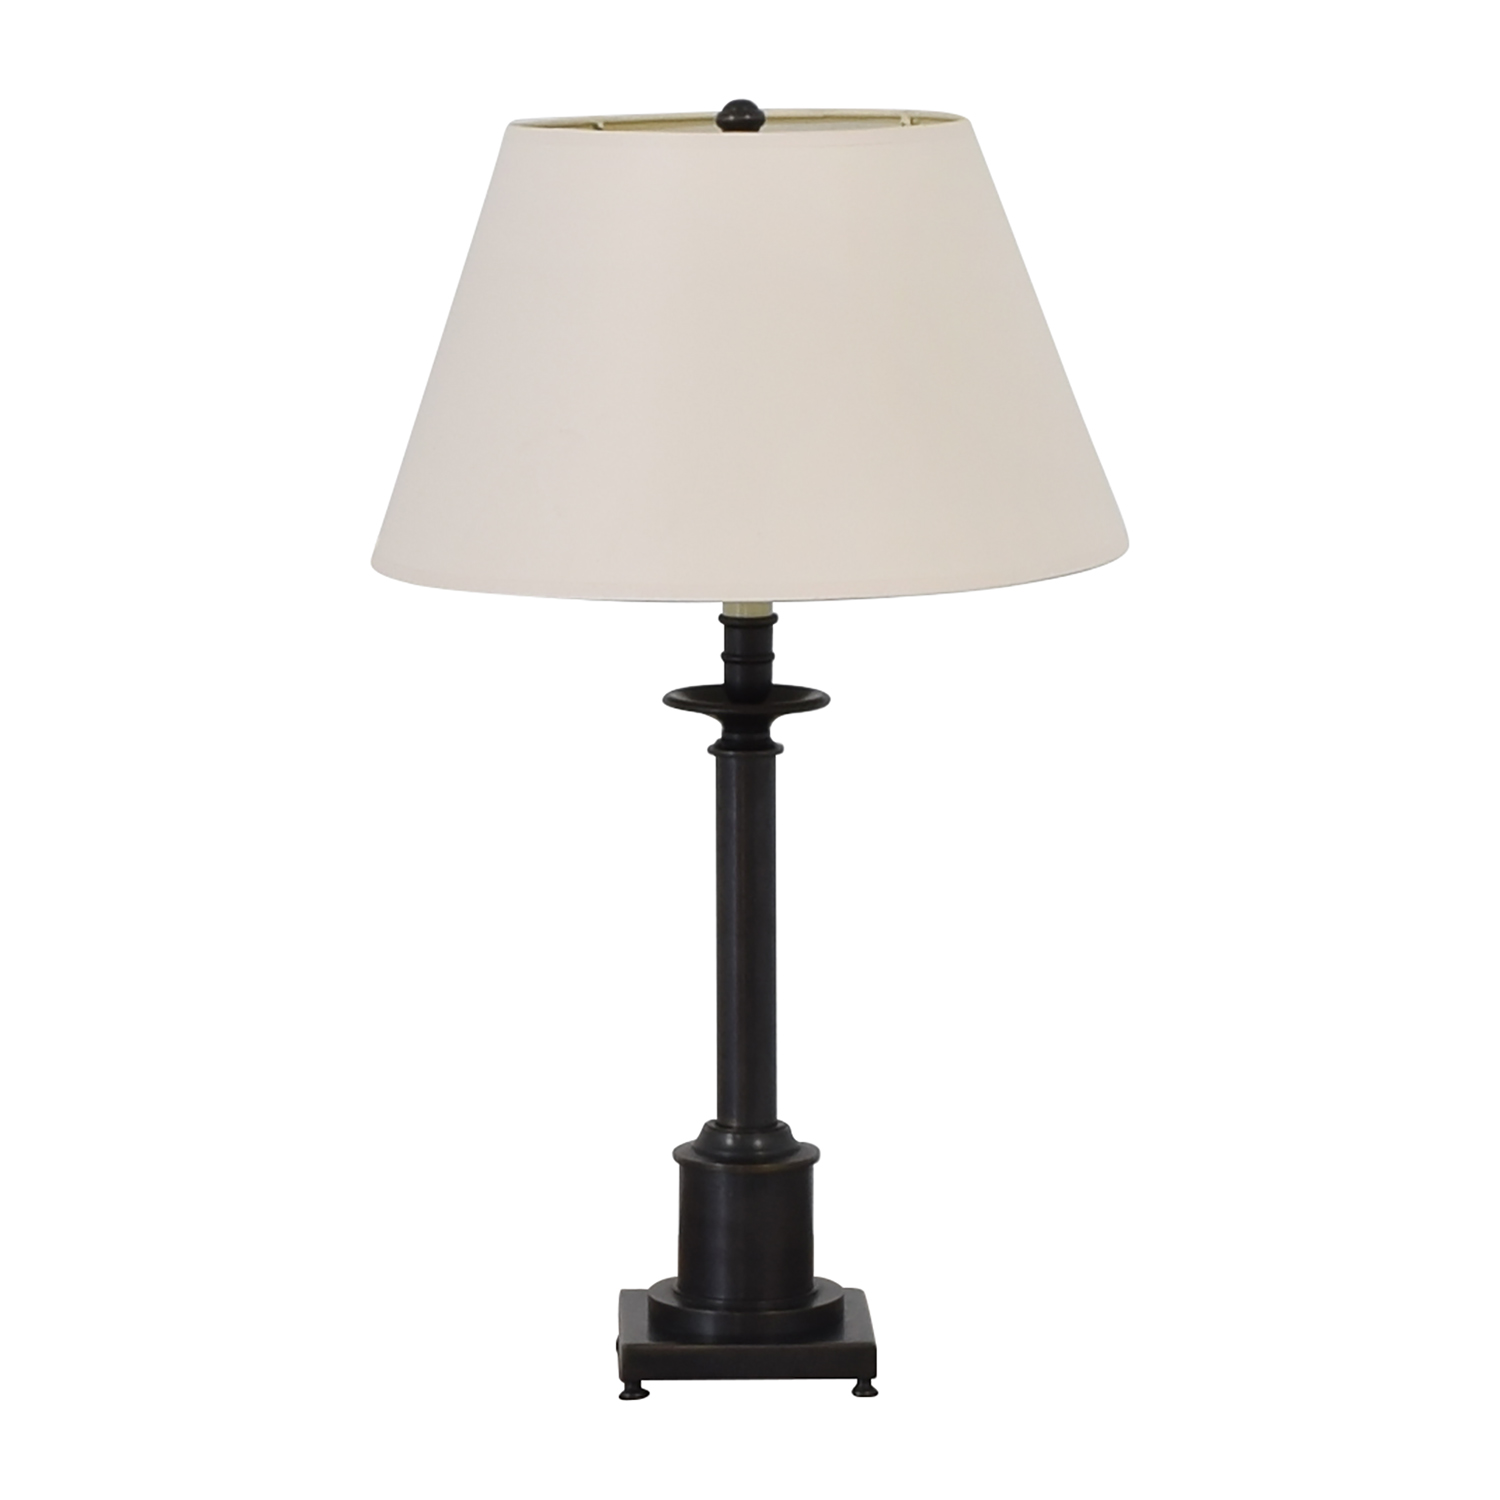 buy Crate & Barrel Adjustable Table Lamp Crate & Barrel Decor